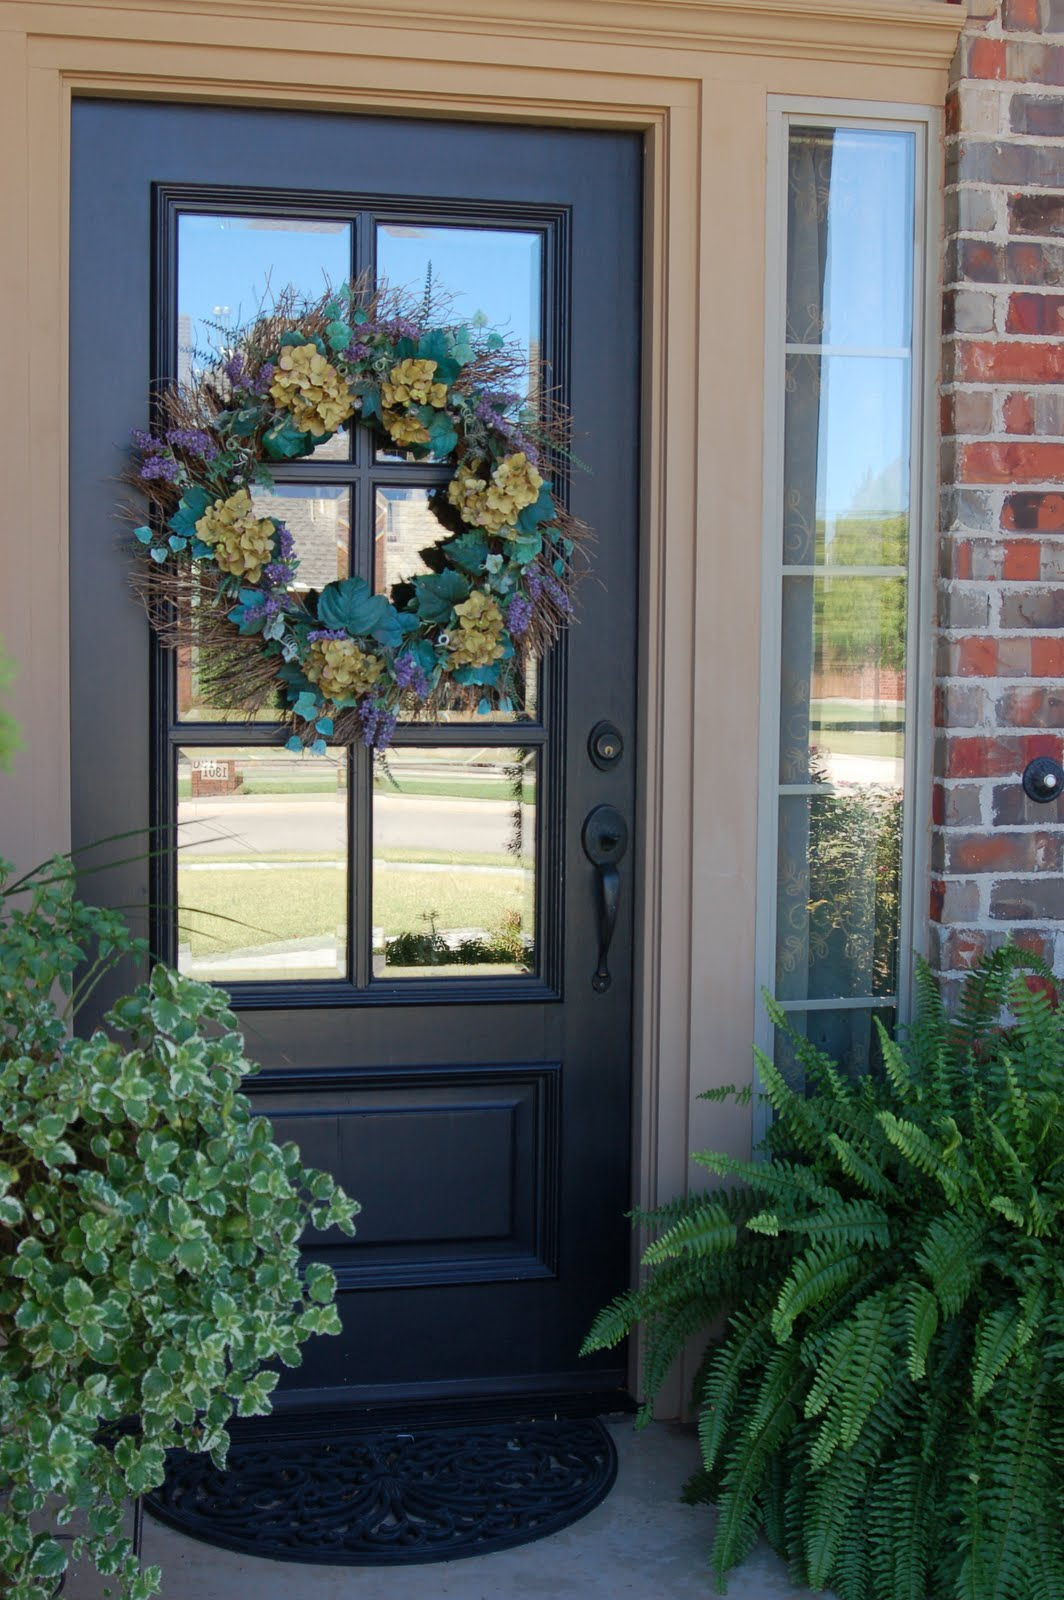 Grey dog designs front door facelift Front door color ideas for brick house